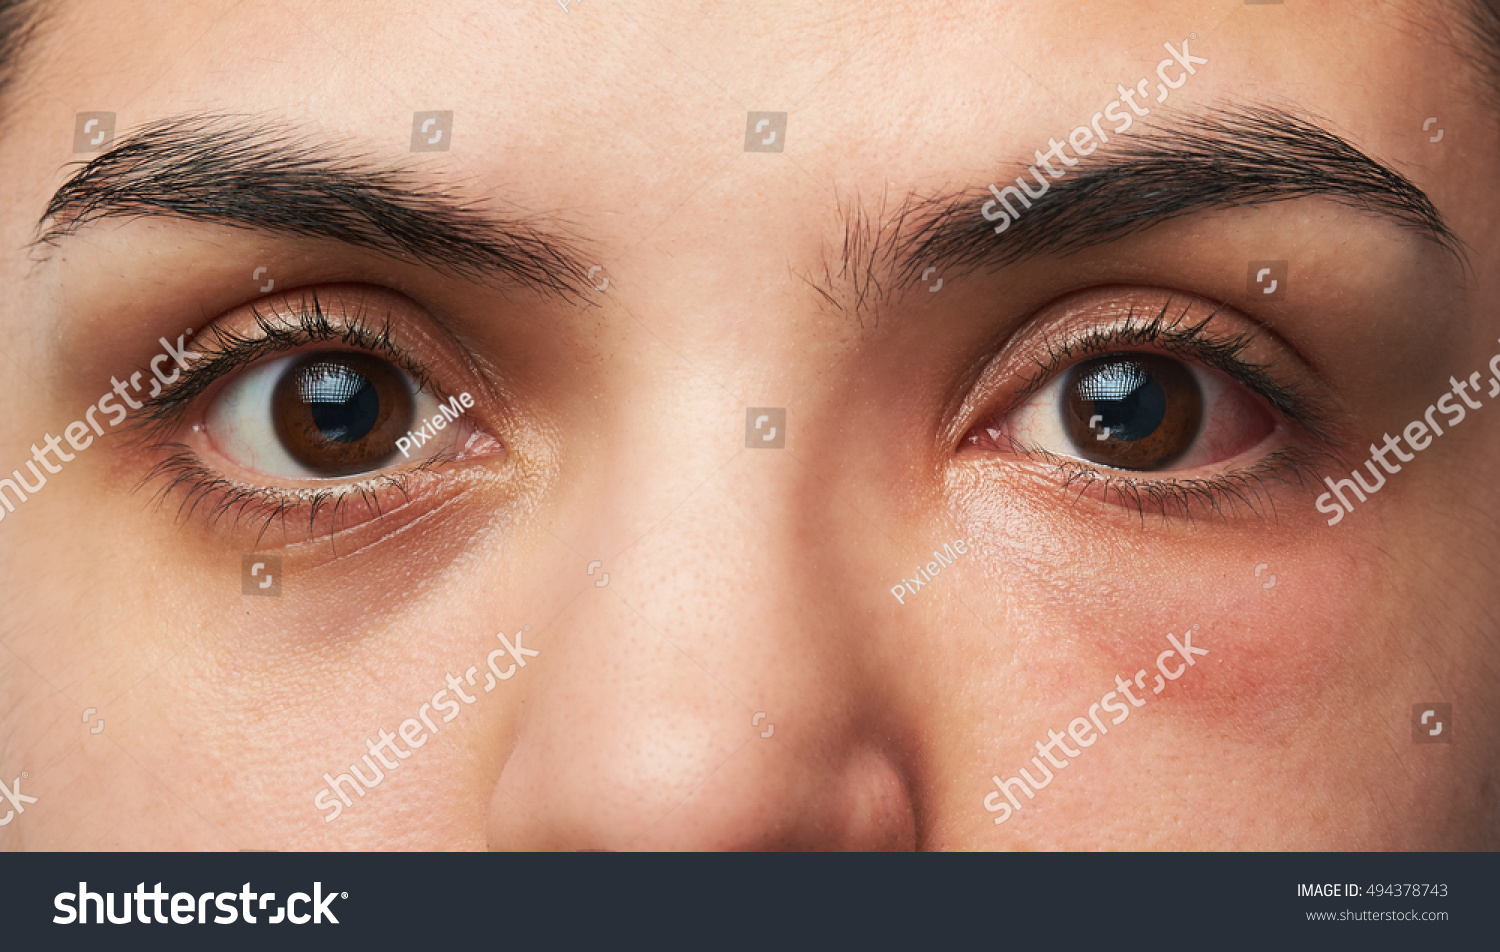 Close Up Of Two Woman Eyes With Allergy Reaction On One Red Eye Ez